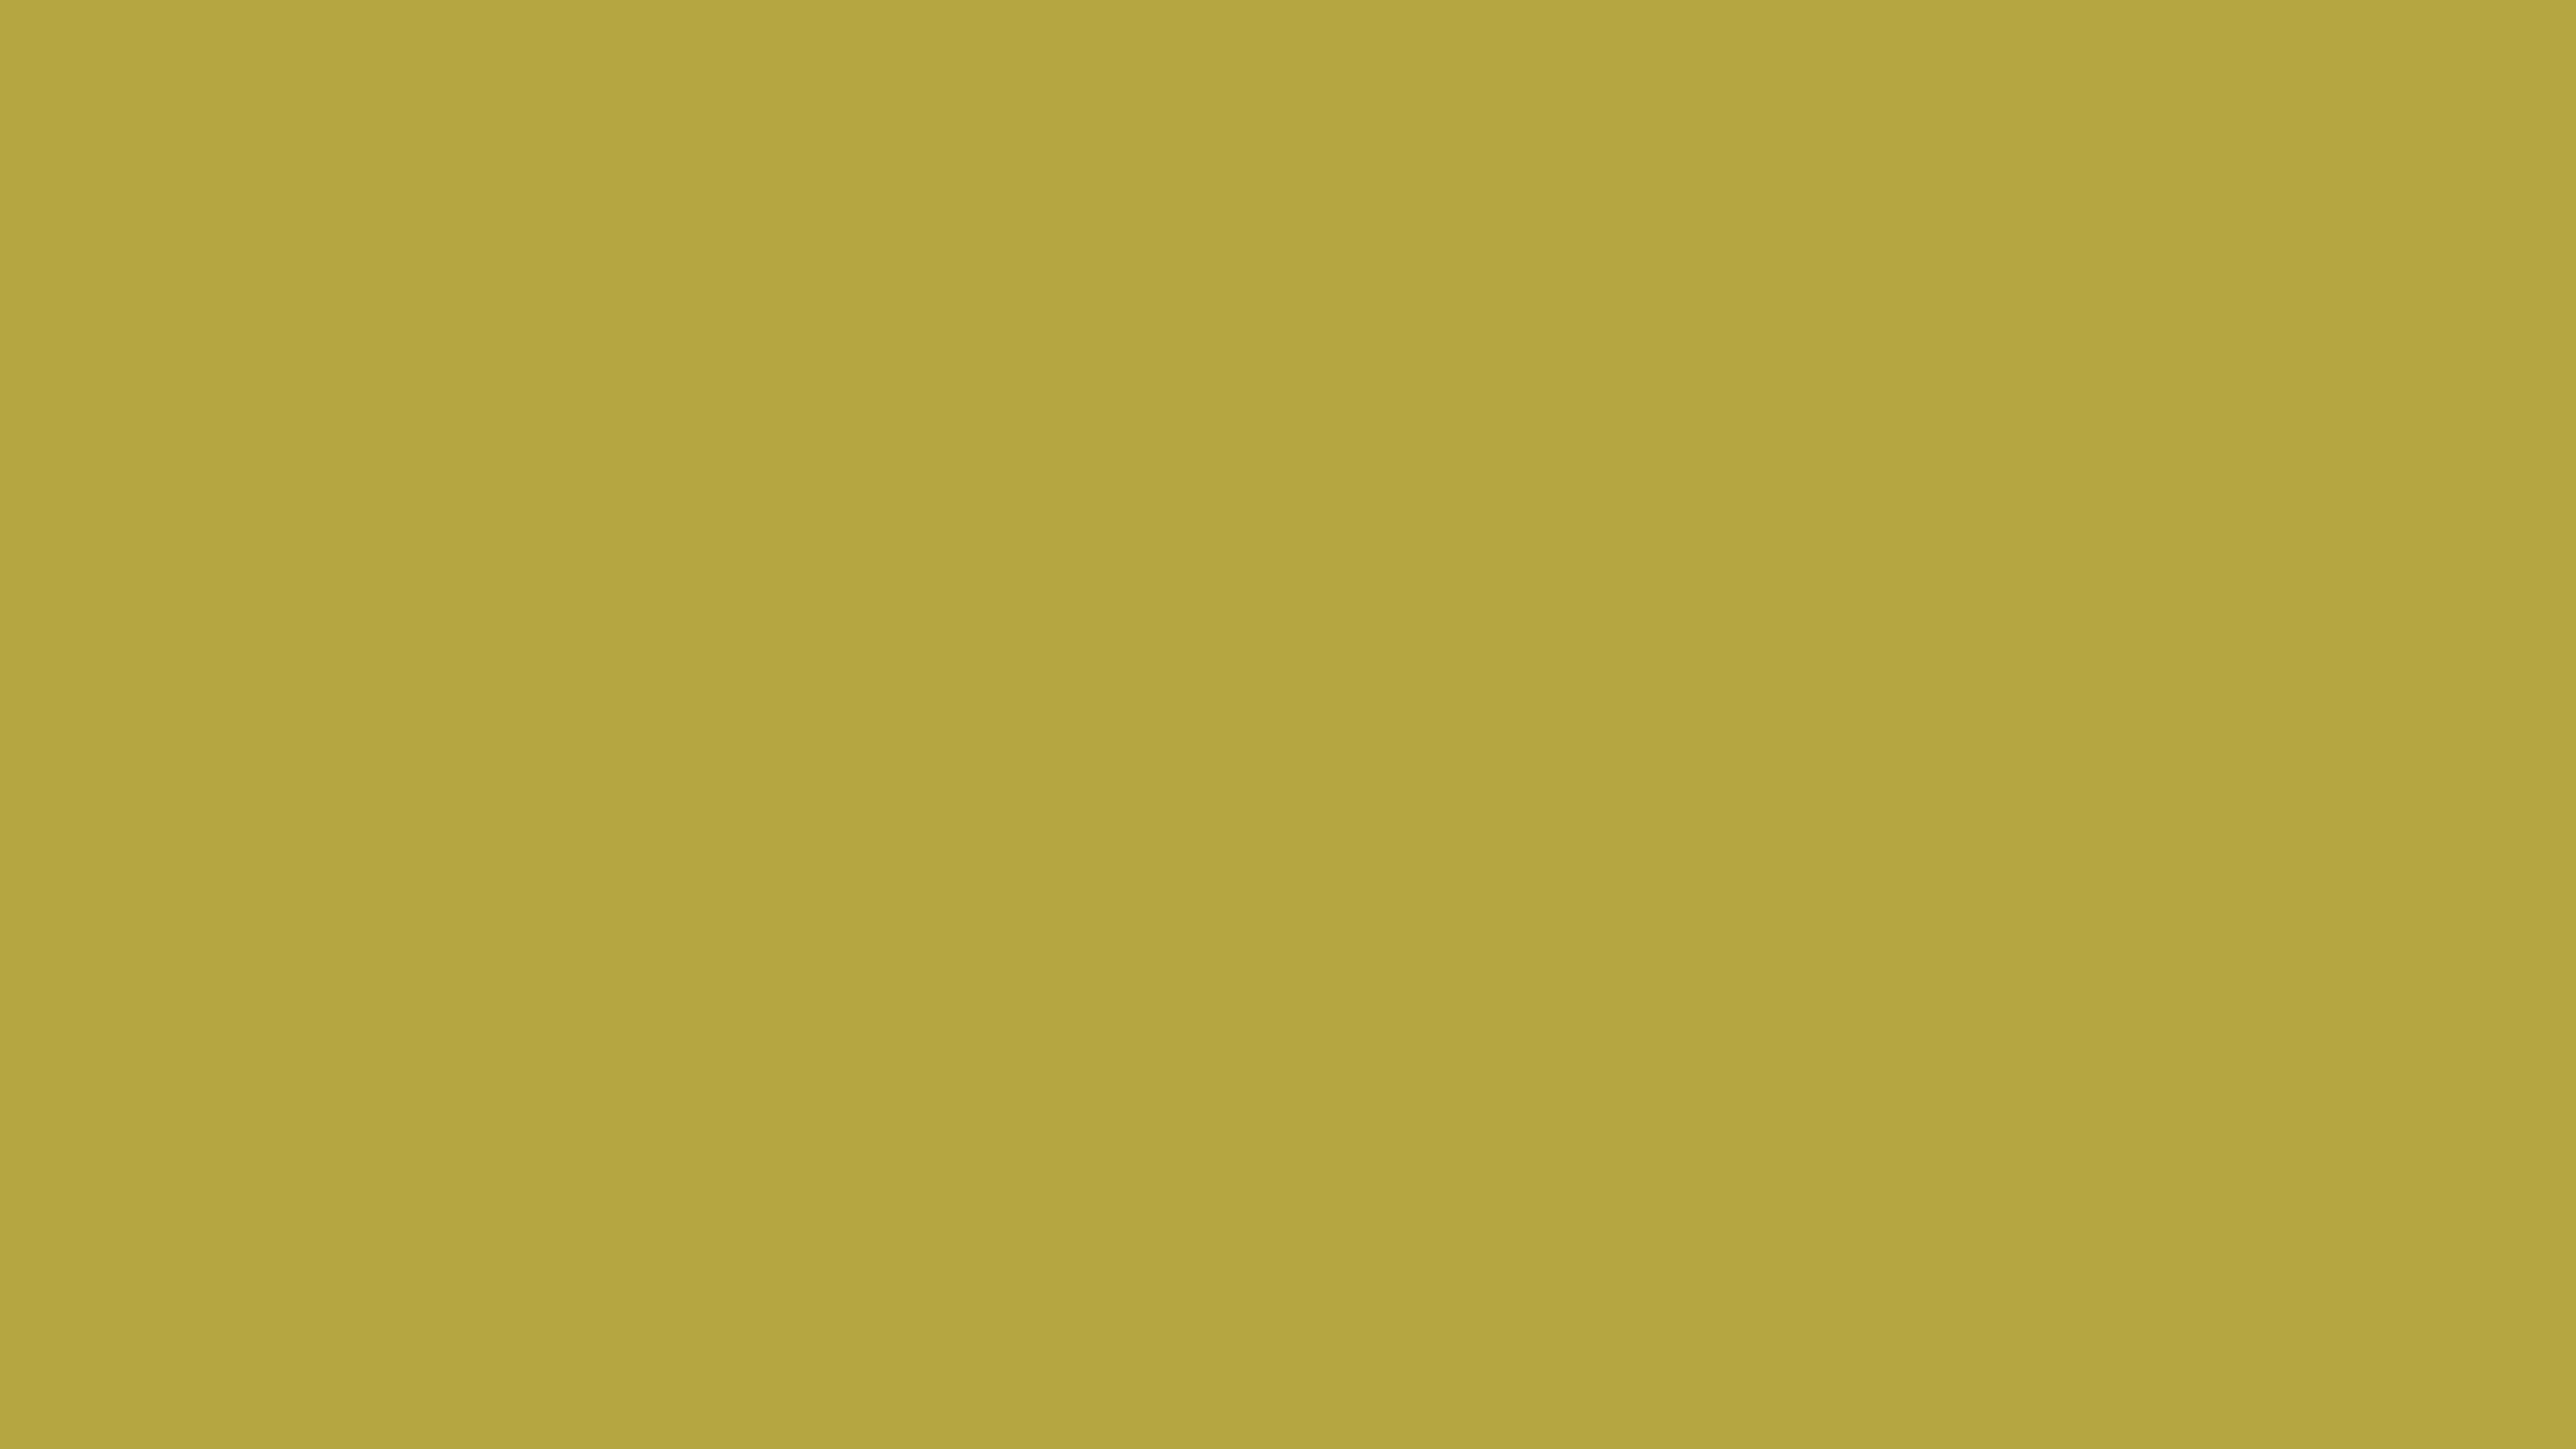 5120x2880 Brass Solid Color Background